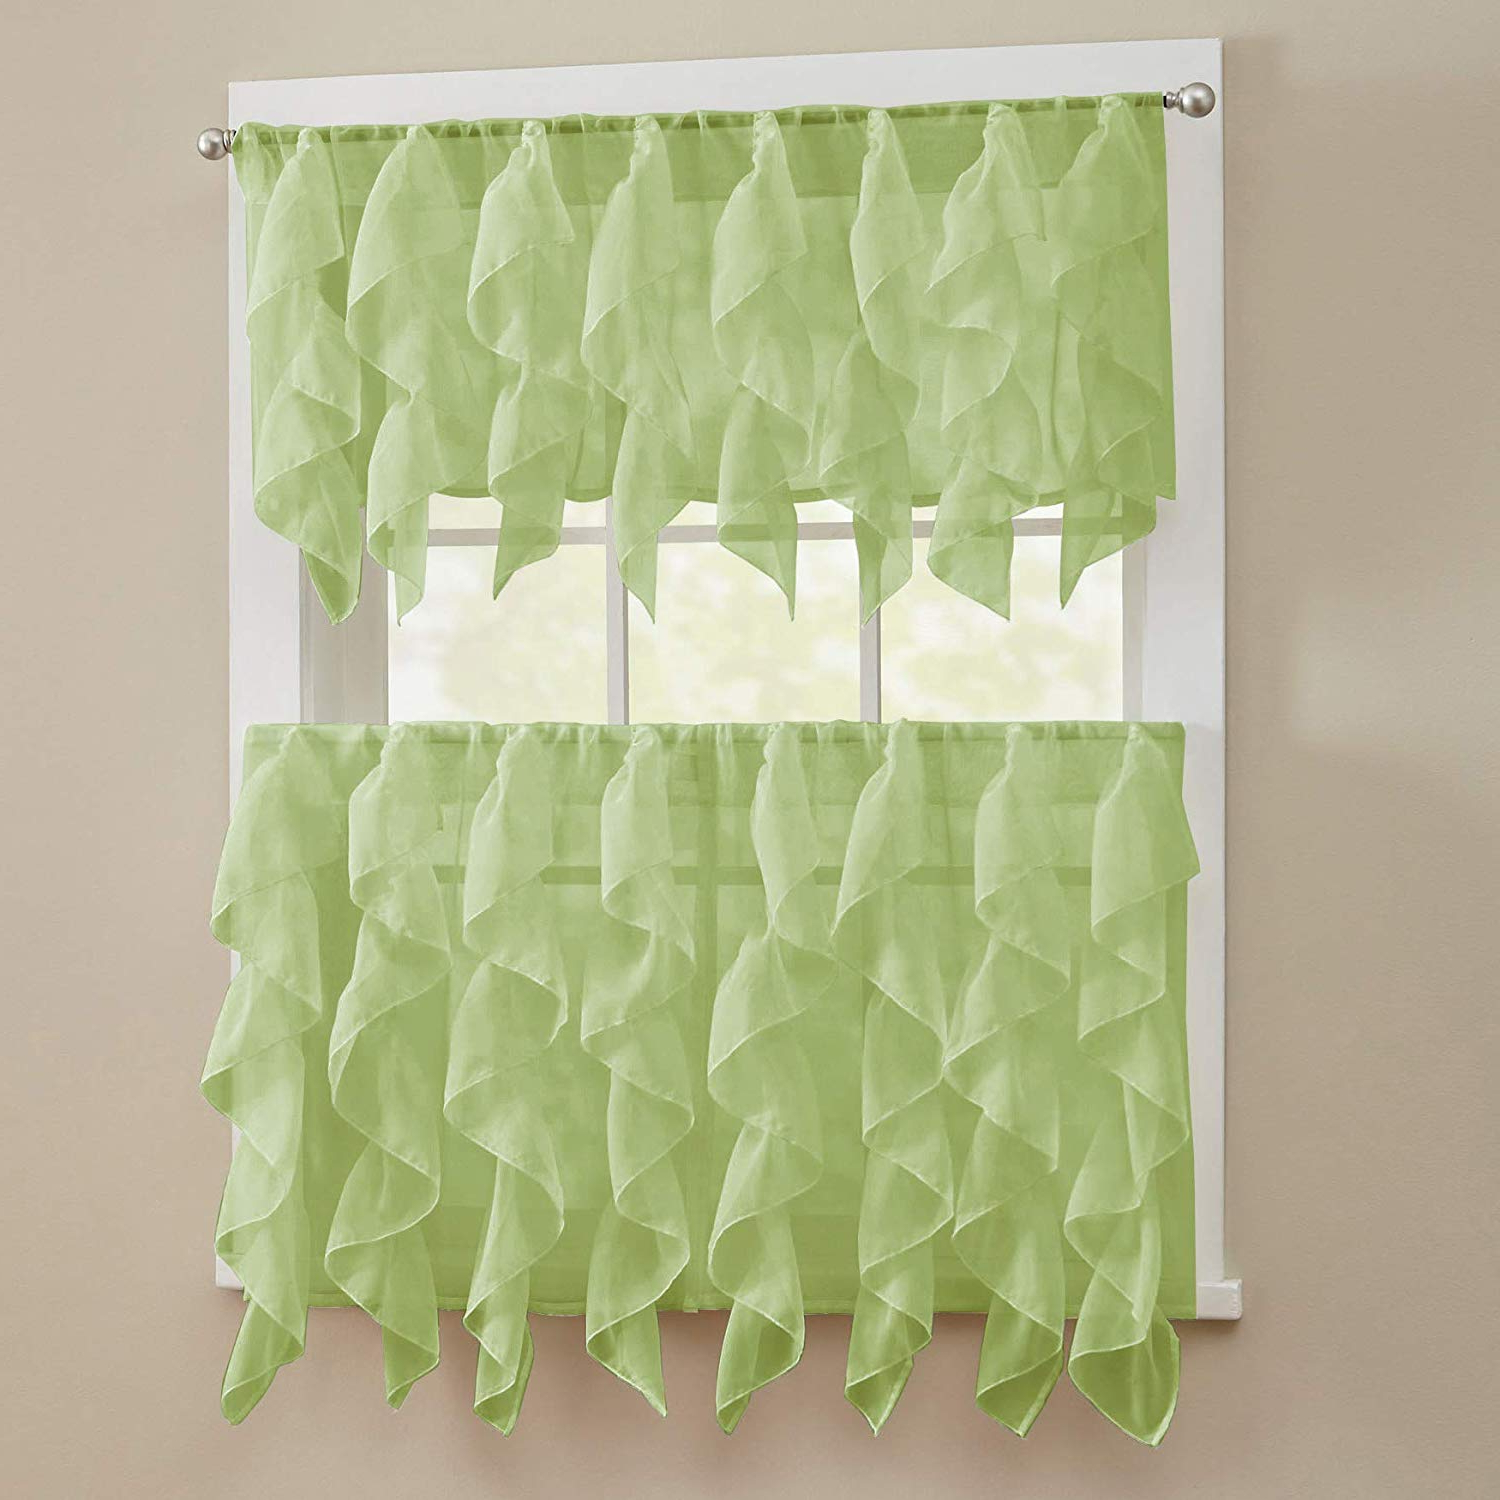 "Sweet Home Collection 3 Piece Kitchen Curtain Set Sheet Vertical Cascading Waterfall Ruffle Includes Valance & Choice Of 24"" Or 36"" Teir Pair, Tier, Intended For Well Liked Vertical Ruffled Waterfall Valances And Curtain Tiers (View 10 of 20)"